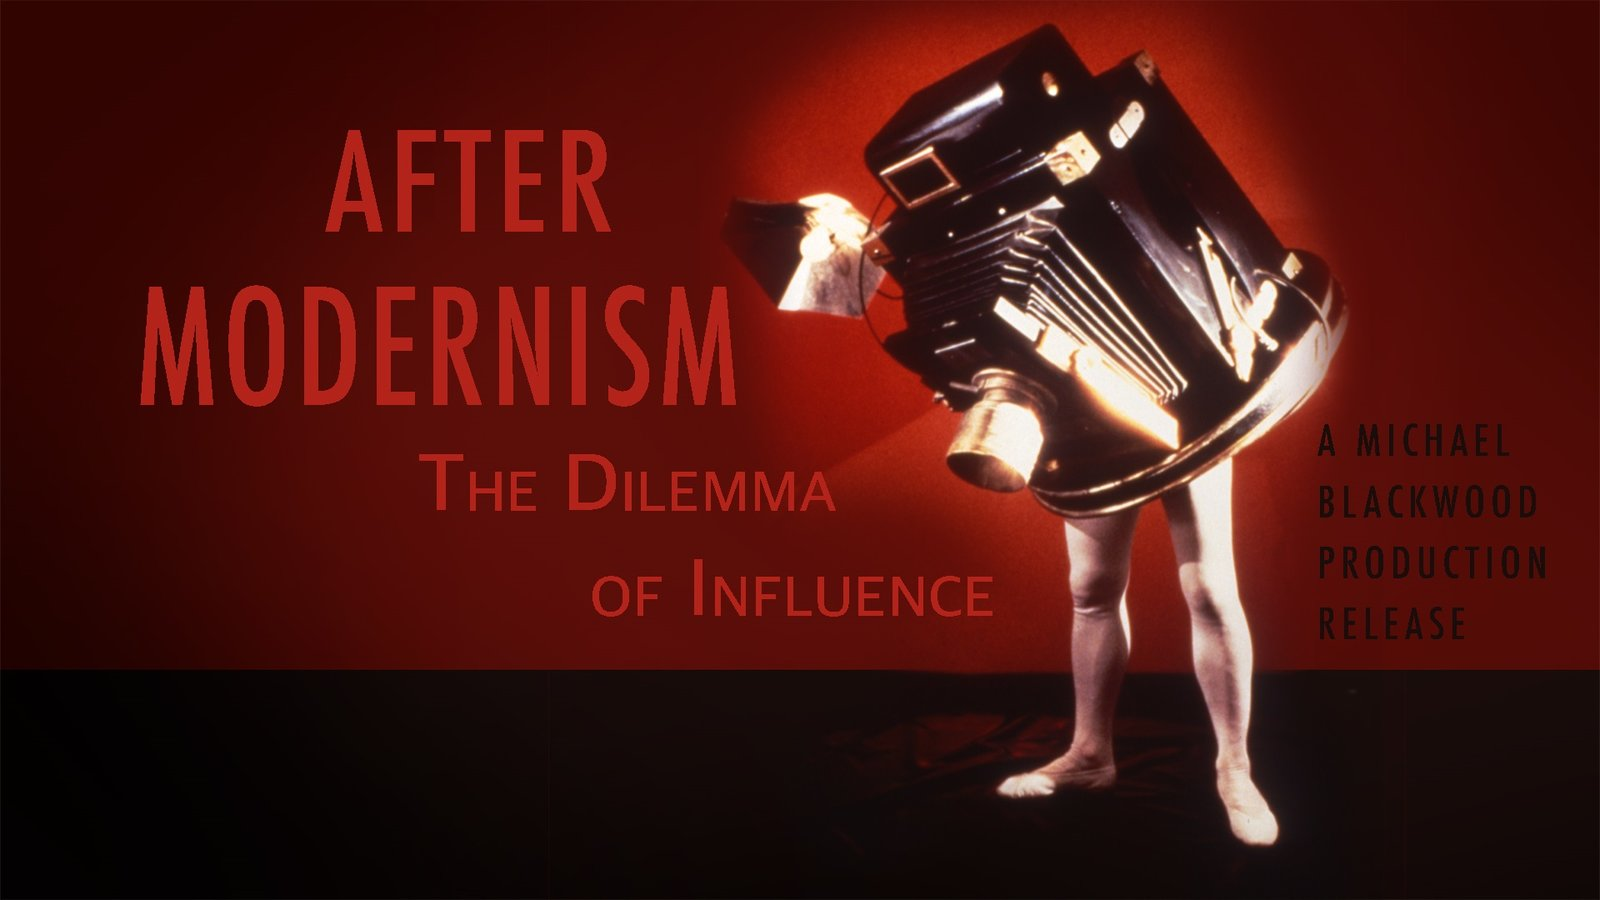 After Modernism - The Dilemma of Influence